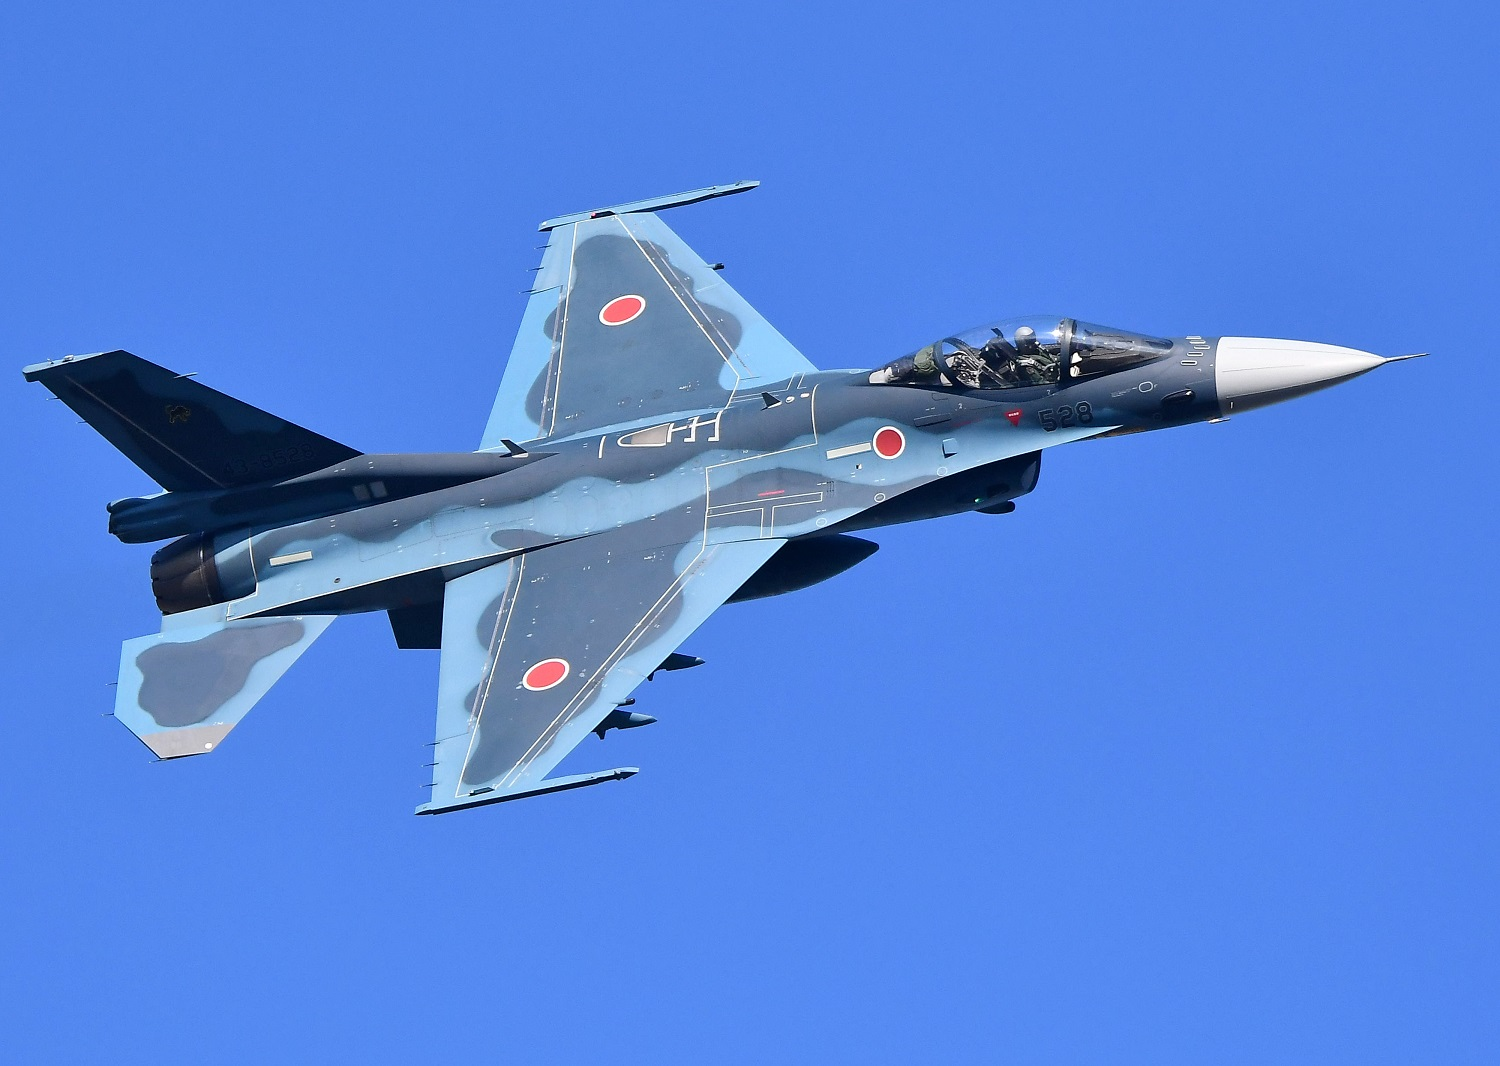 F-2 fighter jets of the Japan Air Self Defense Force